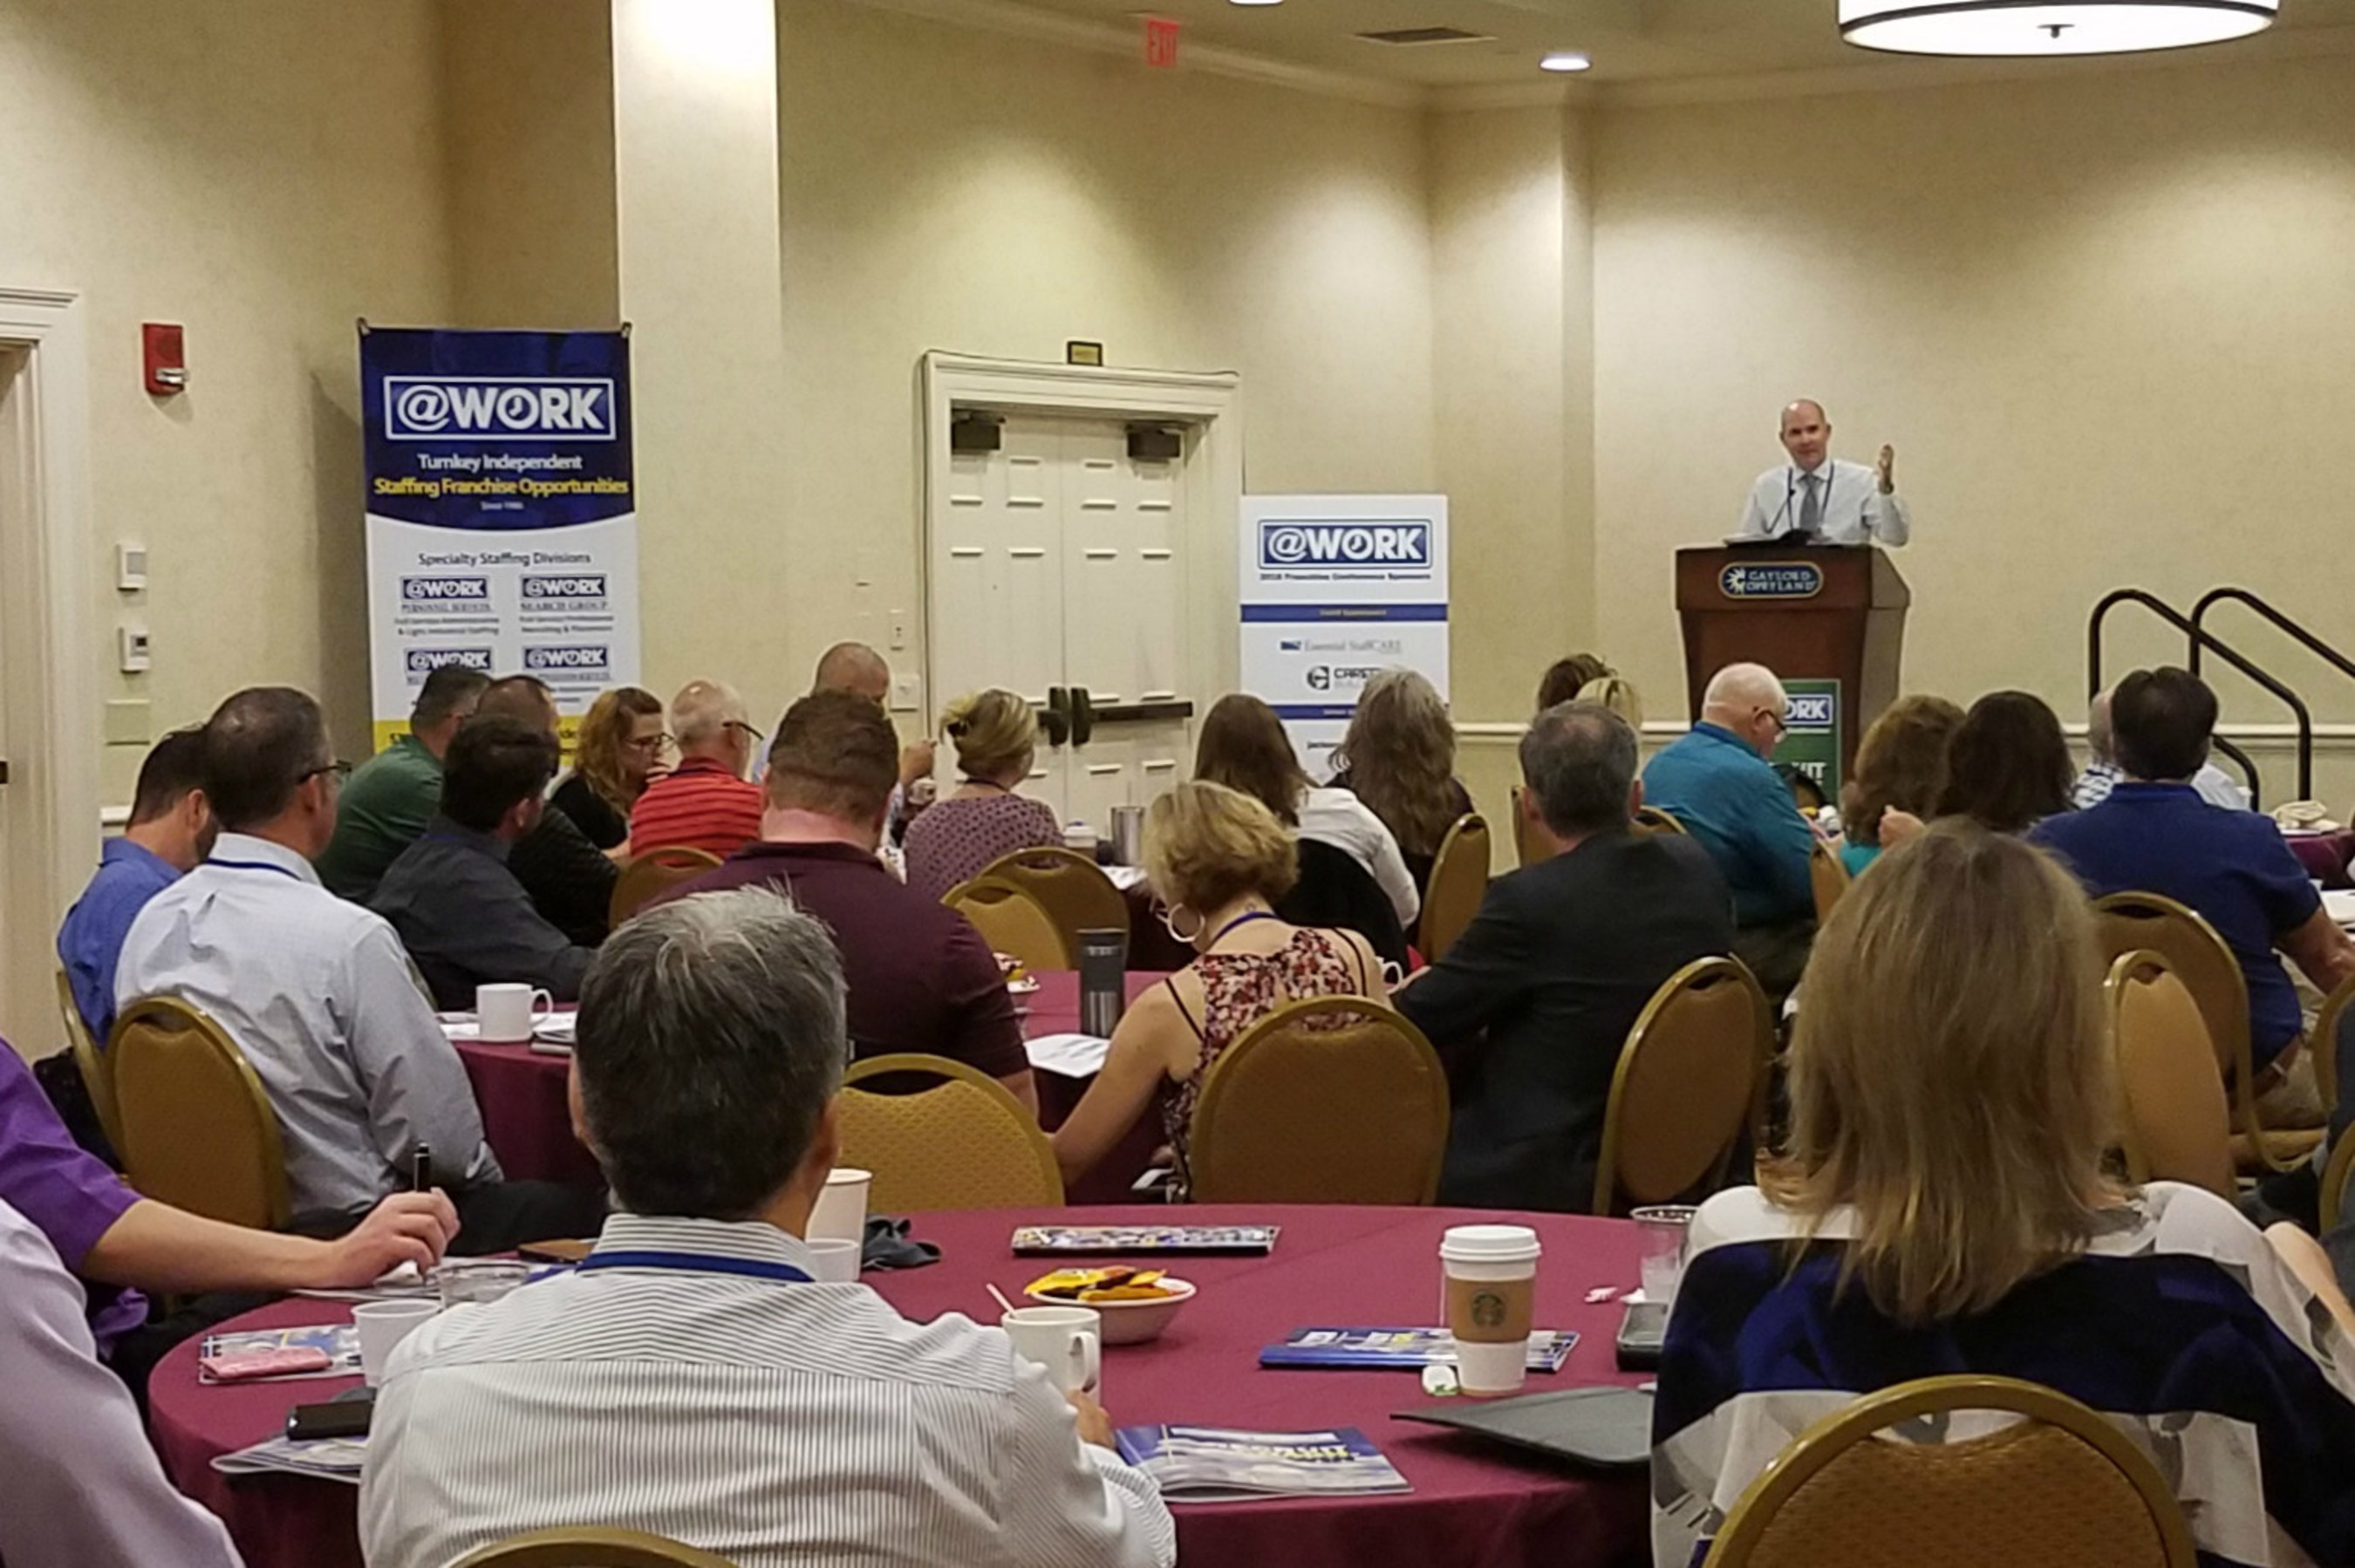 """Leverant, COO & president at AtWork Group, speaks on """"Recruit. Coach. Win."""" at the company's annual franchise convention."""